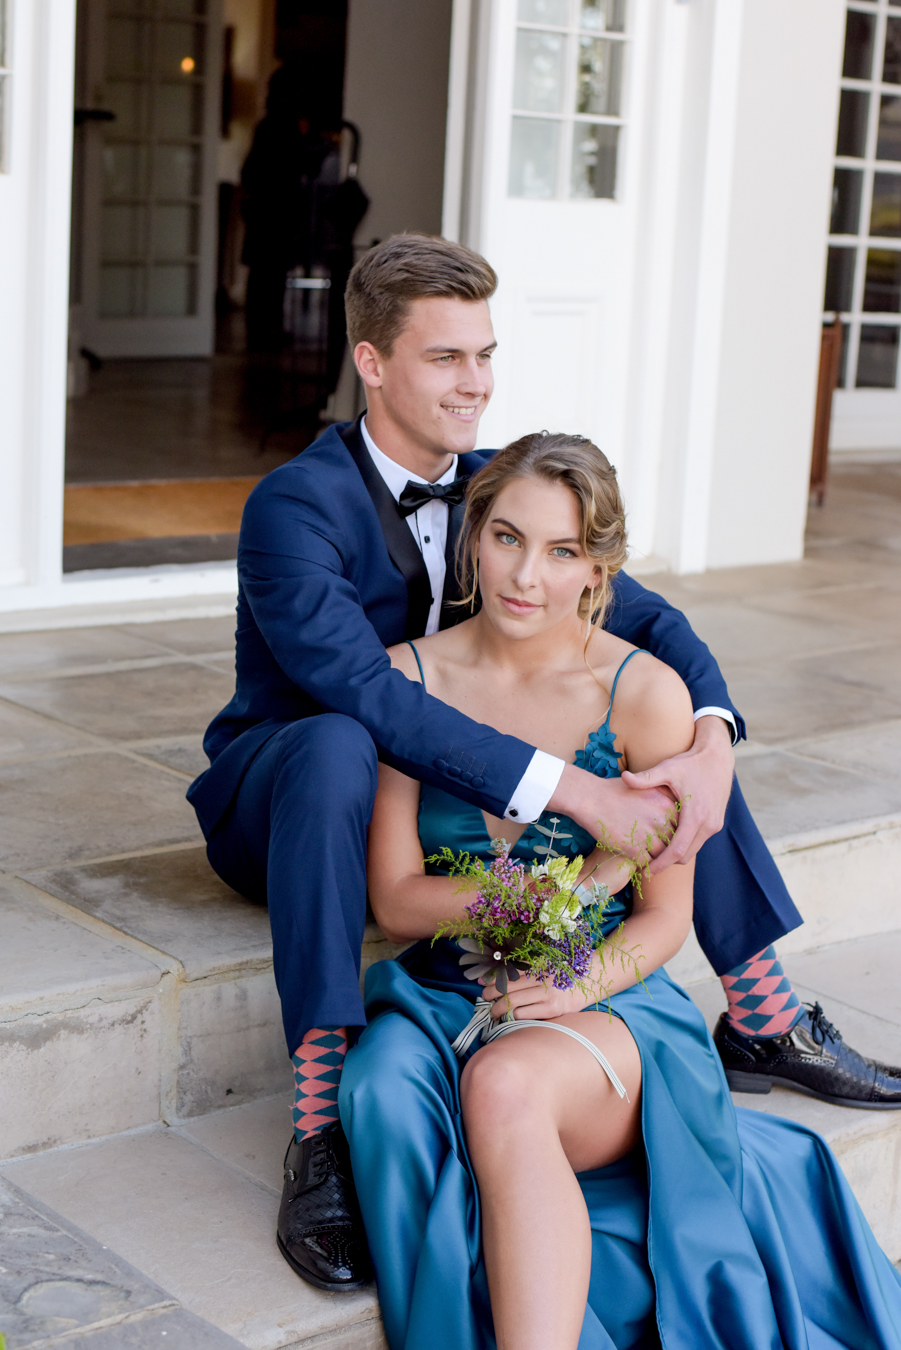 Inecke Photography – Matric Farewell low res3